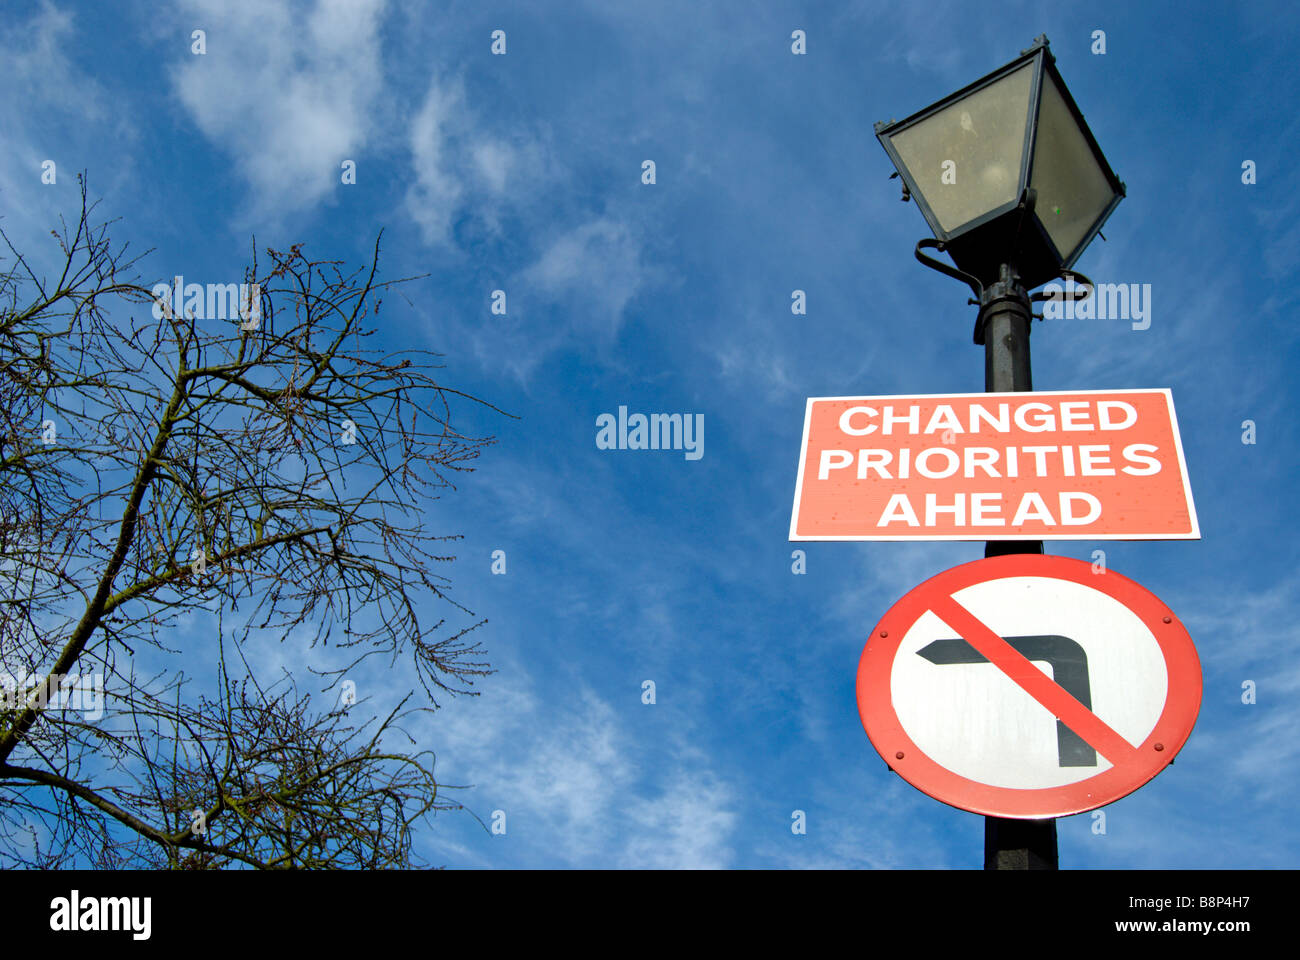 british road signs fixed to a lamppost stating changed priorities ahead and no left turn - Stock Image